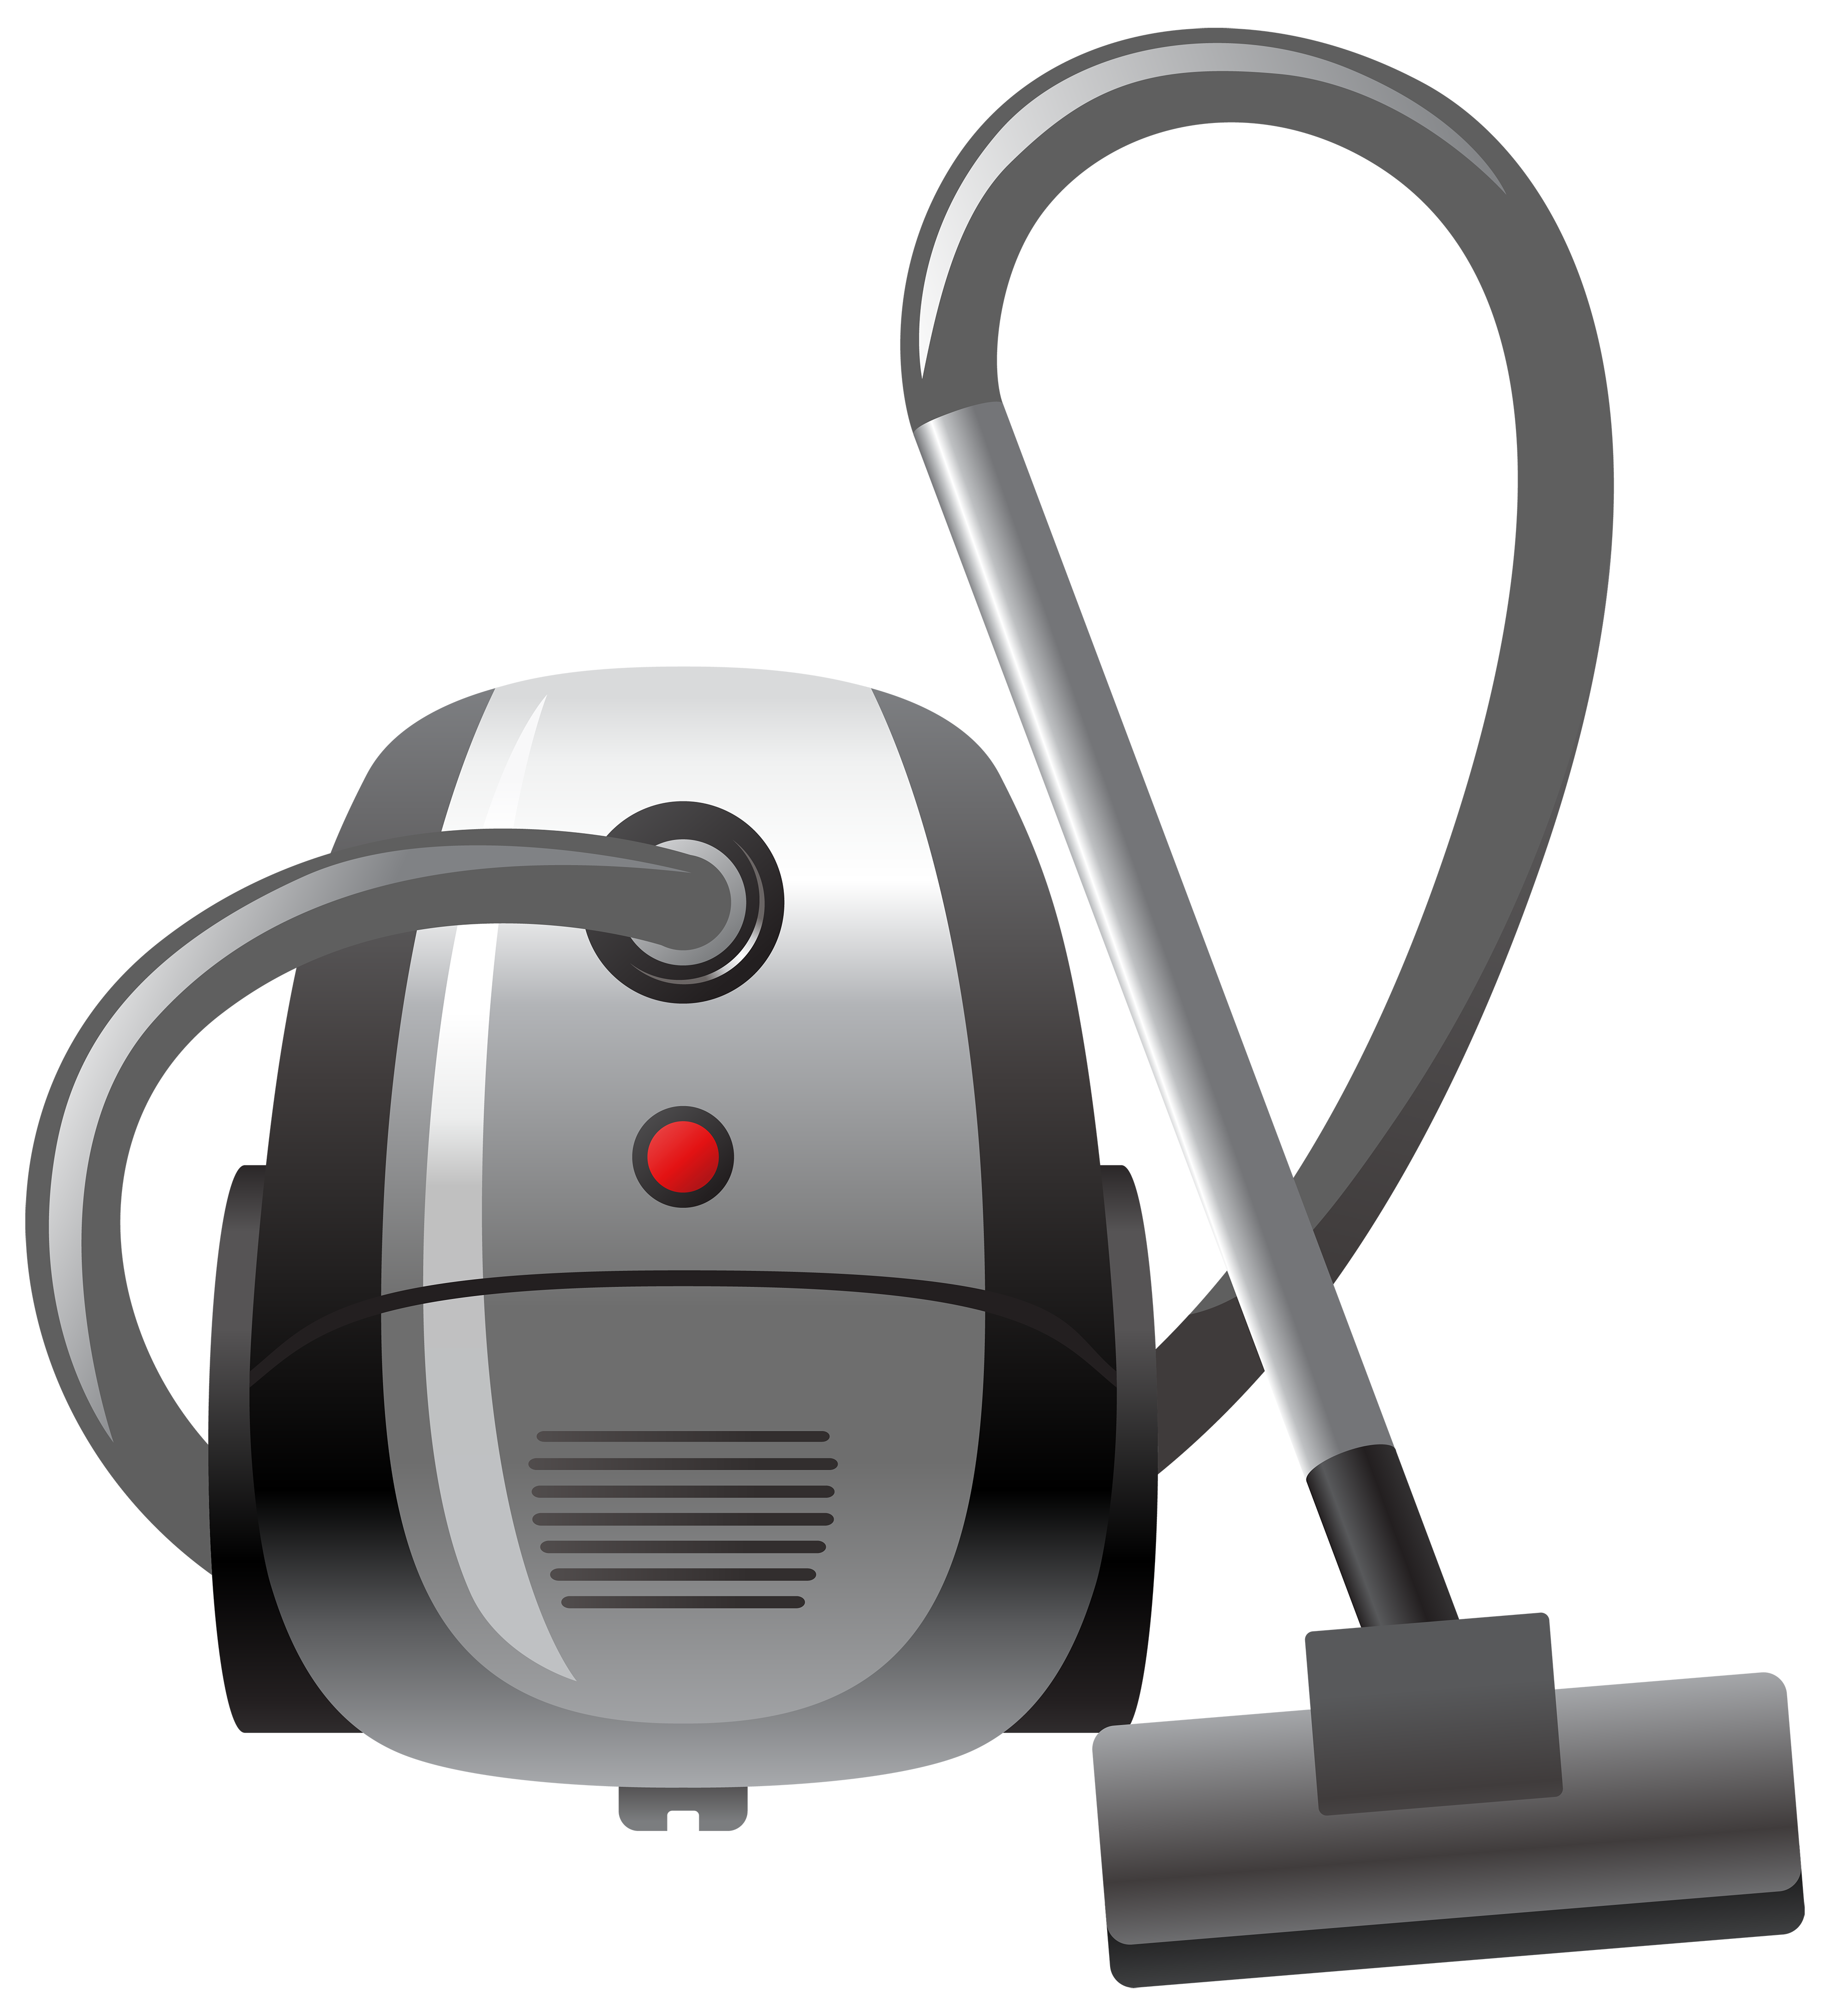 Clean car clipart graphic royalty free library Vacuum Cleaner PNG Clipart | CLIP ART FOUR | Pinterest | Vacuums and ... graphic royalty free library